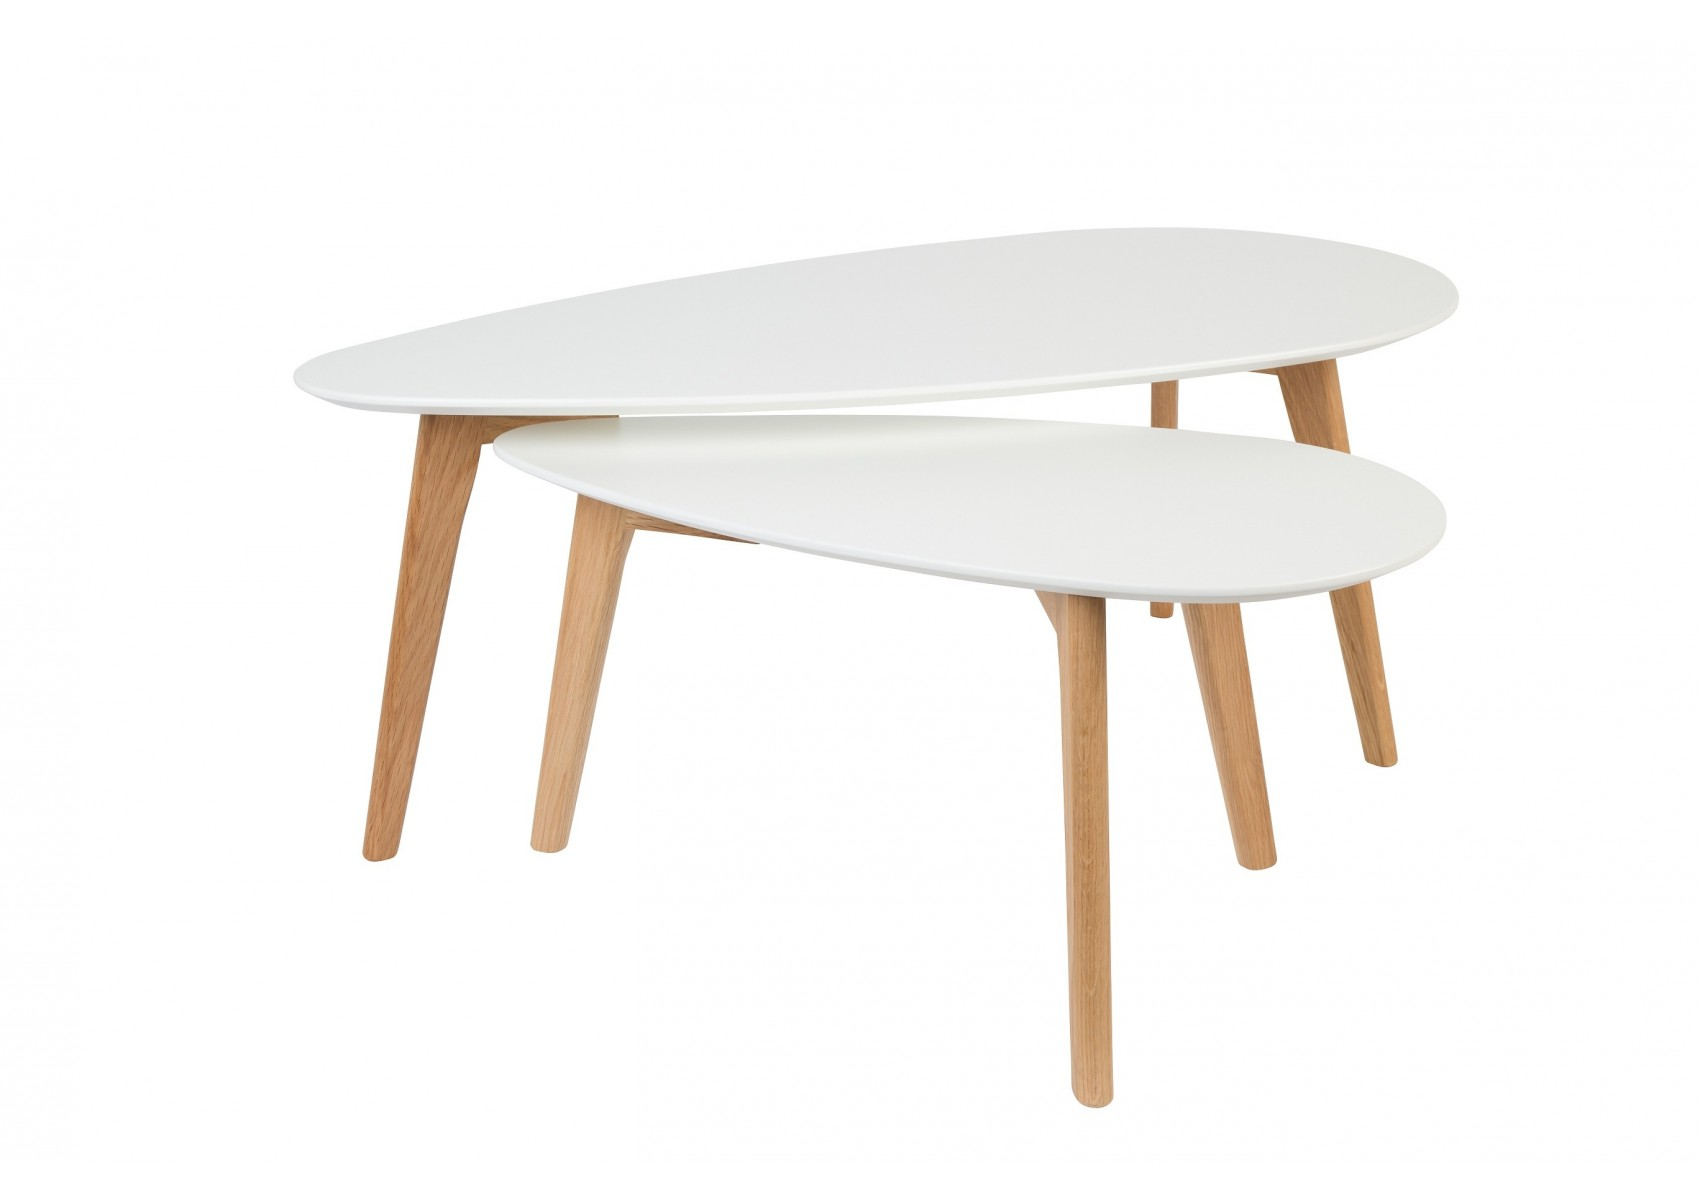 Tables basse scandinave drop laqu e blanche for Table scandinave blanche